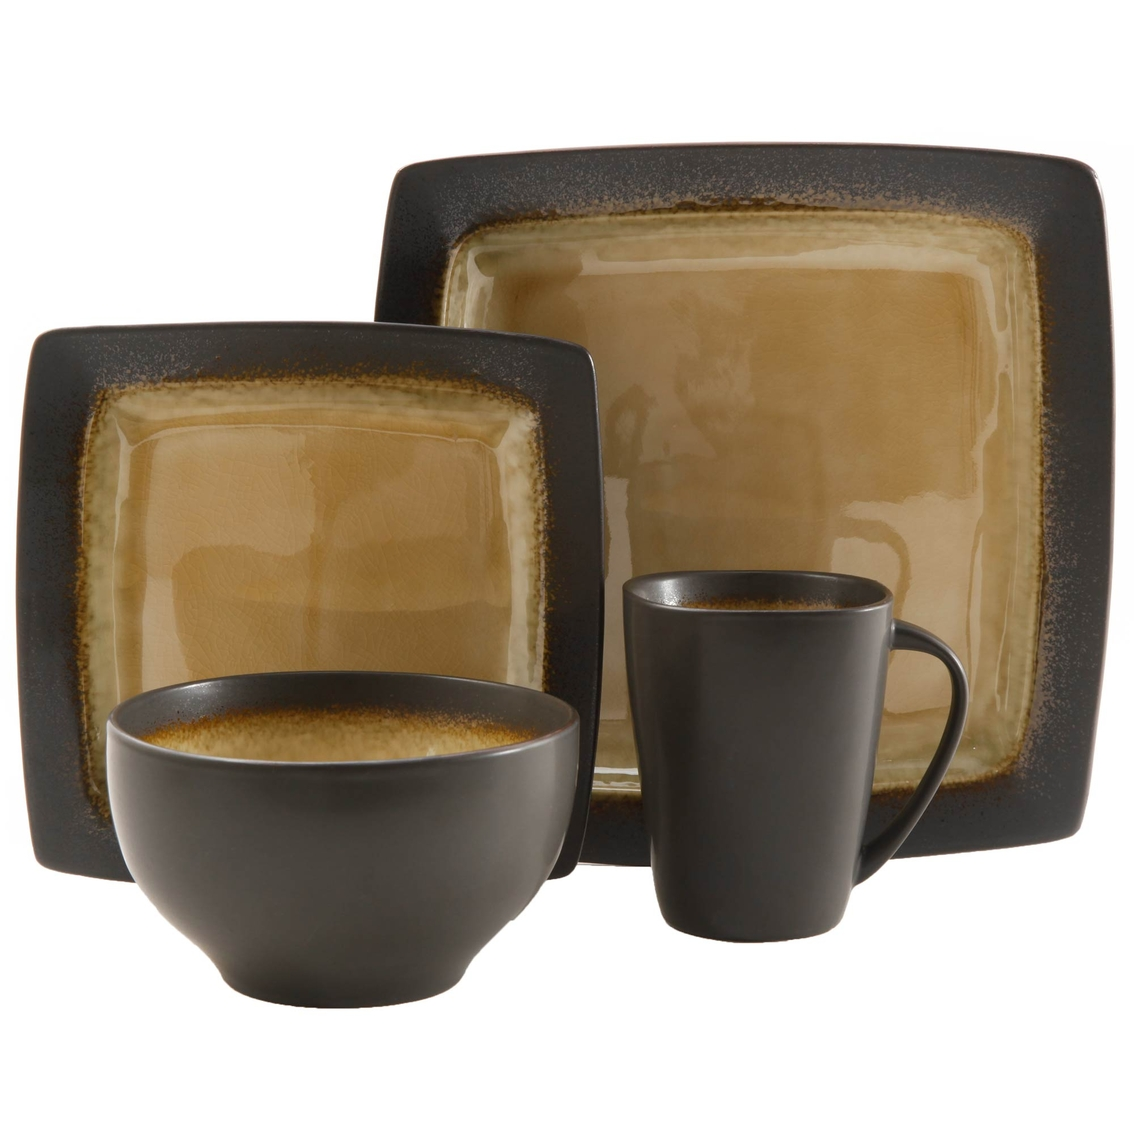 Gibson Elite Ocean Paradise Amber 16 Pc Dinnerware Set  : 69237581404 from www.shopmyexchange.com size 1134 x 1134 jpeg 397kB